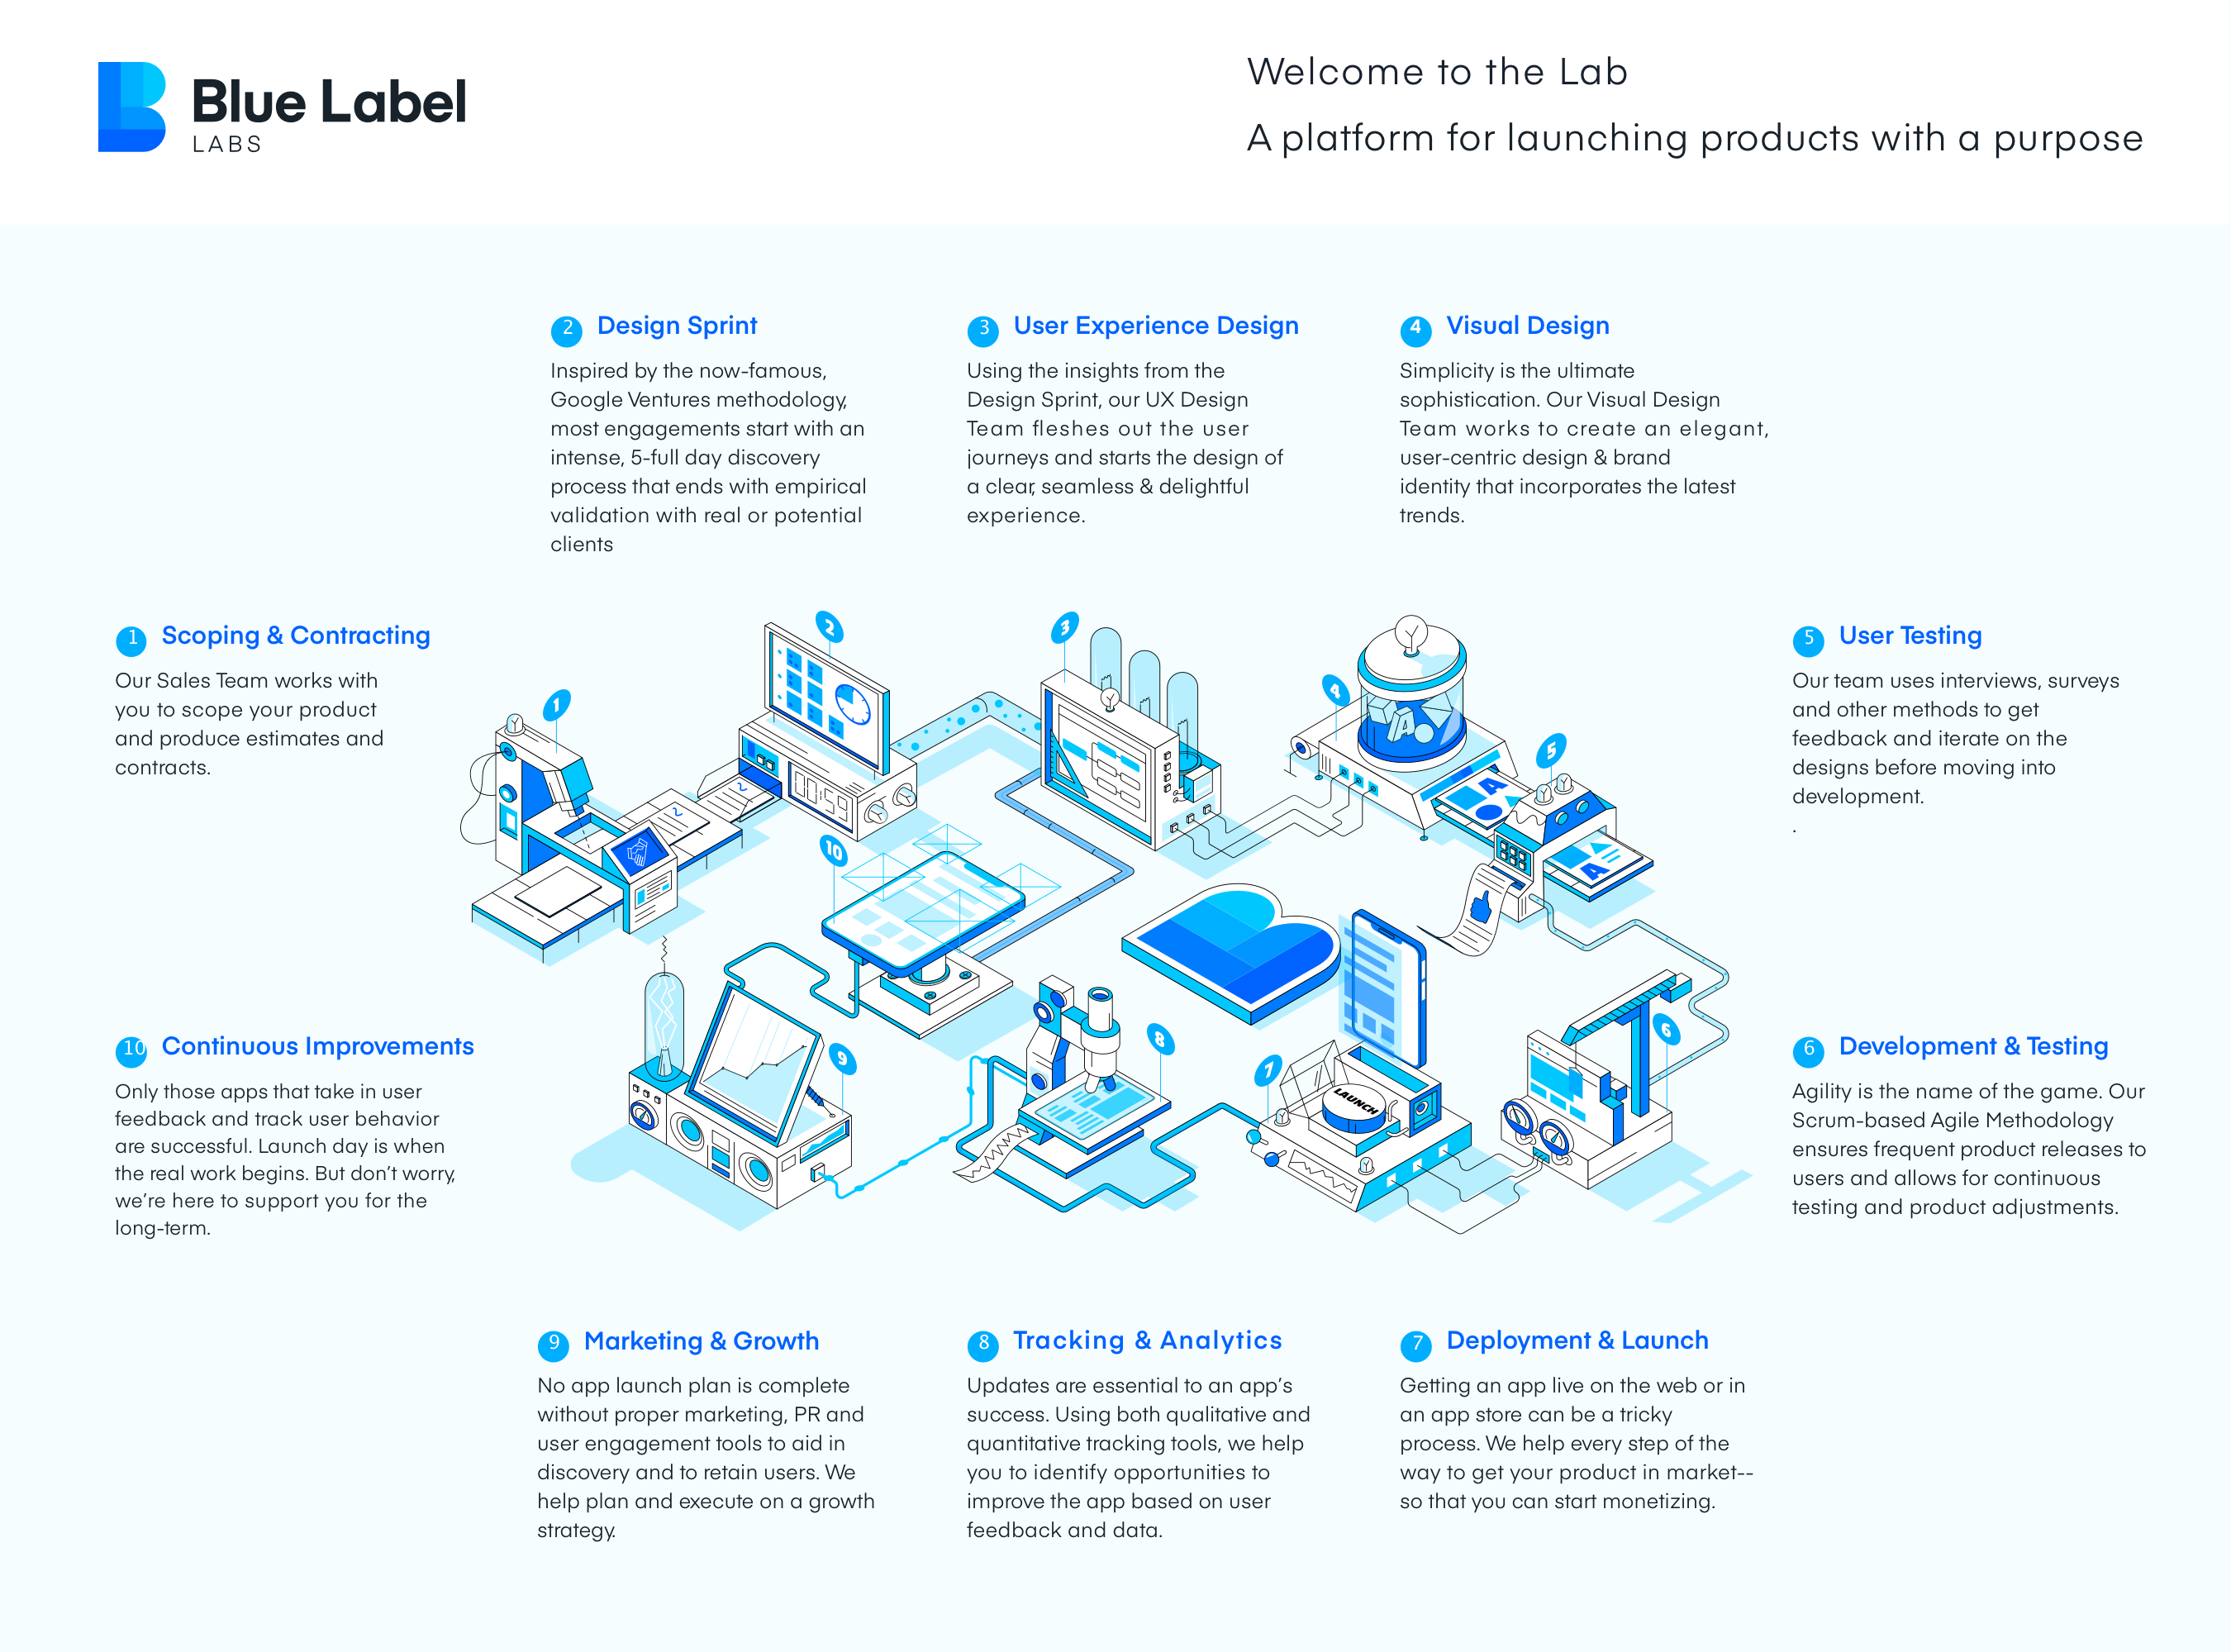 37833blue-label-labs---process.png